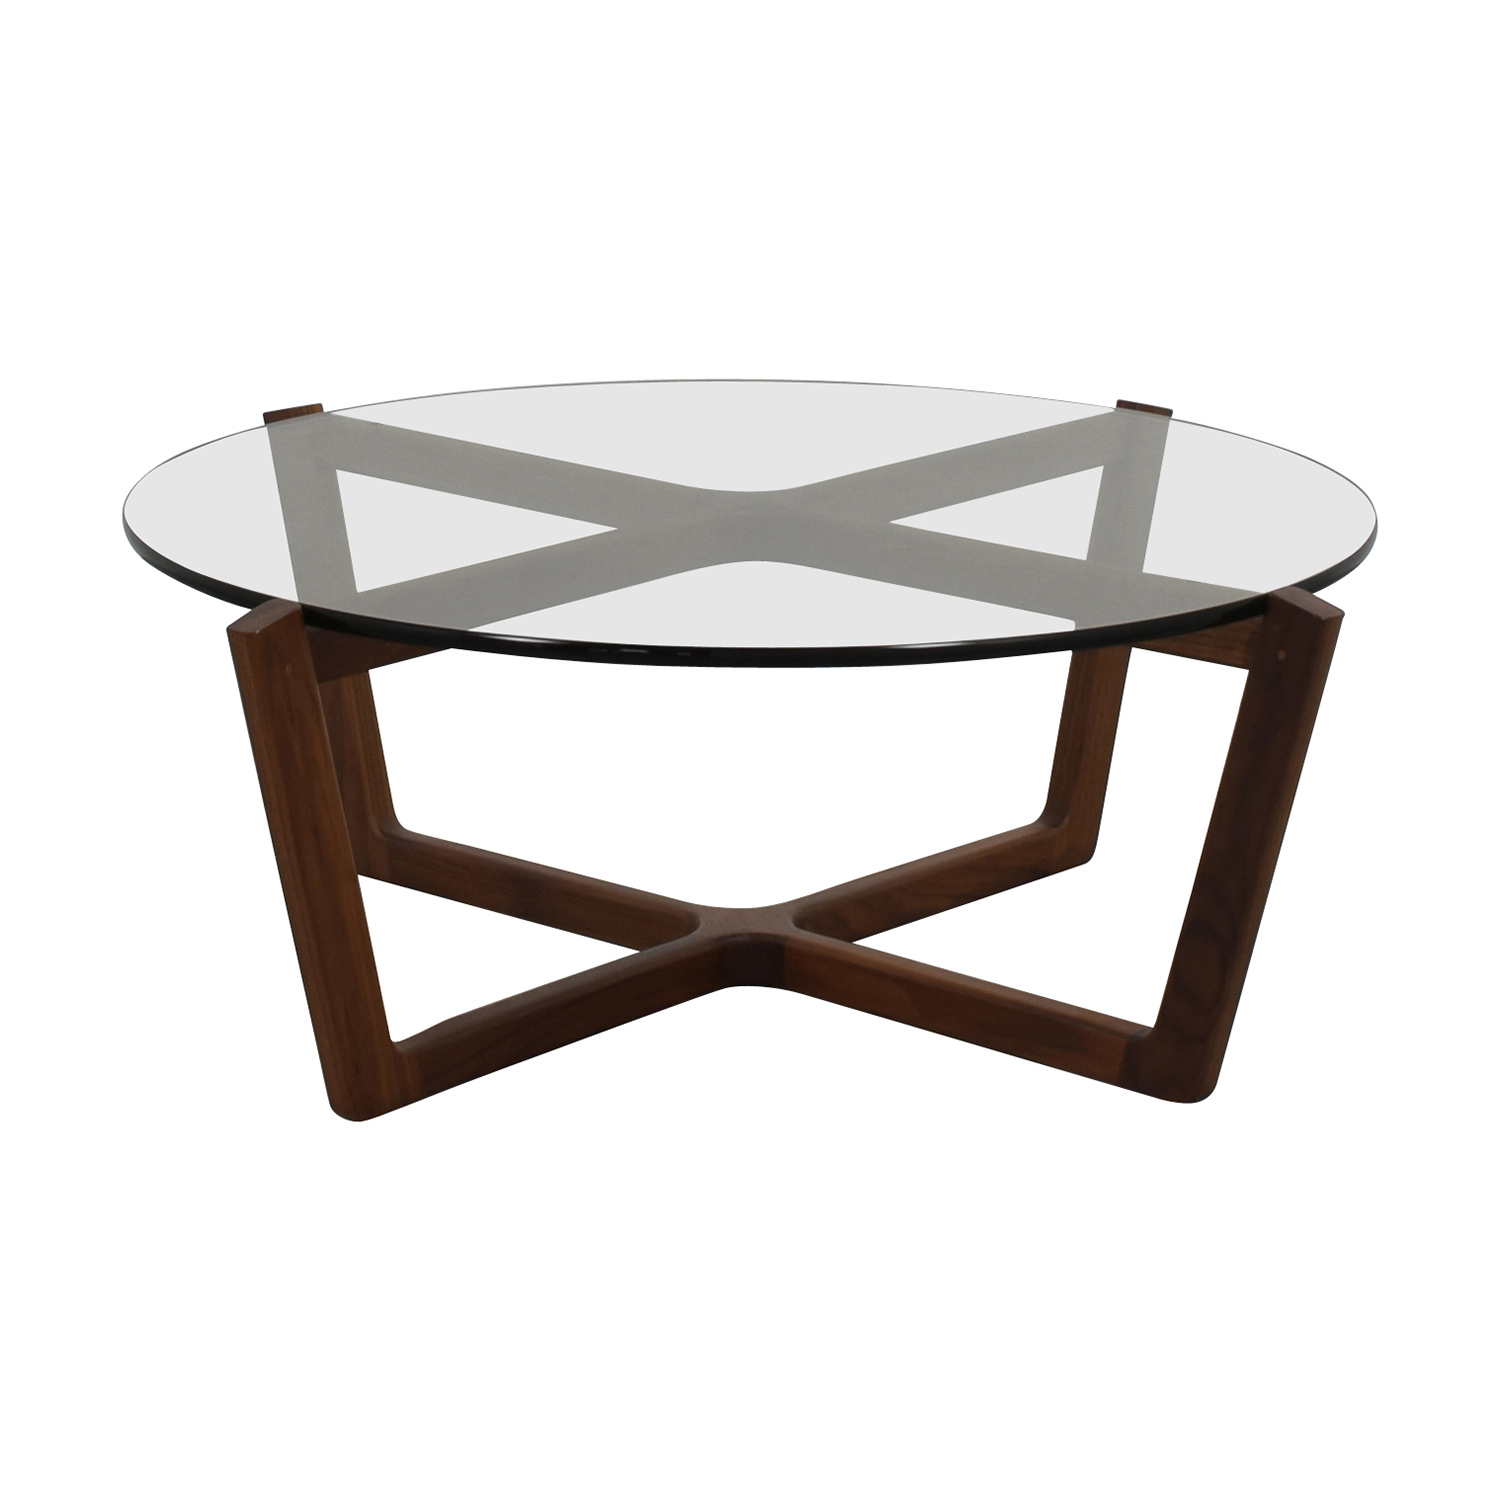 glass coffee table design within reach photo - 10